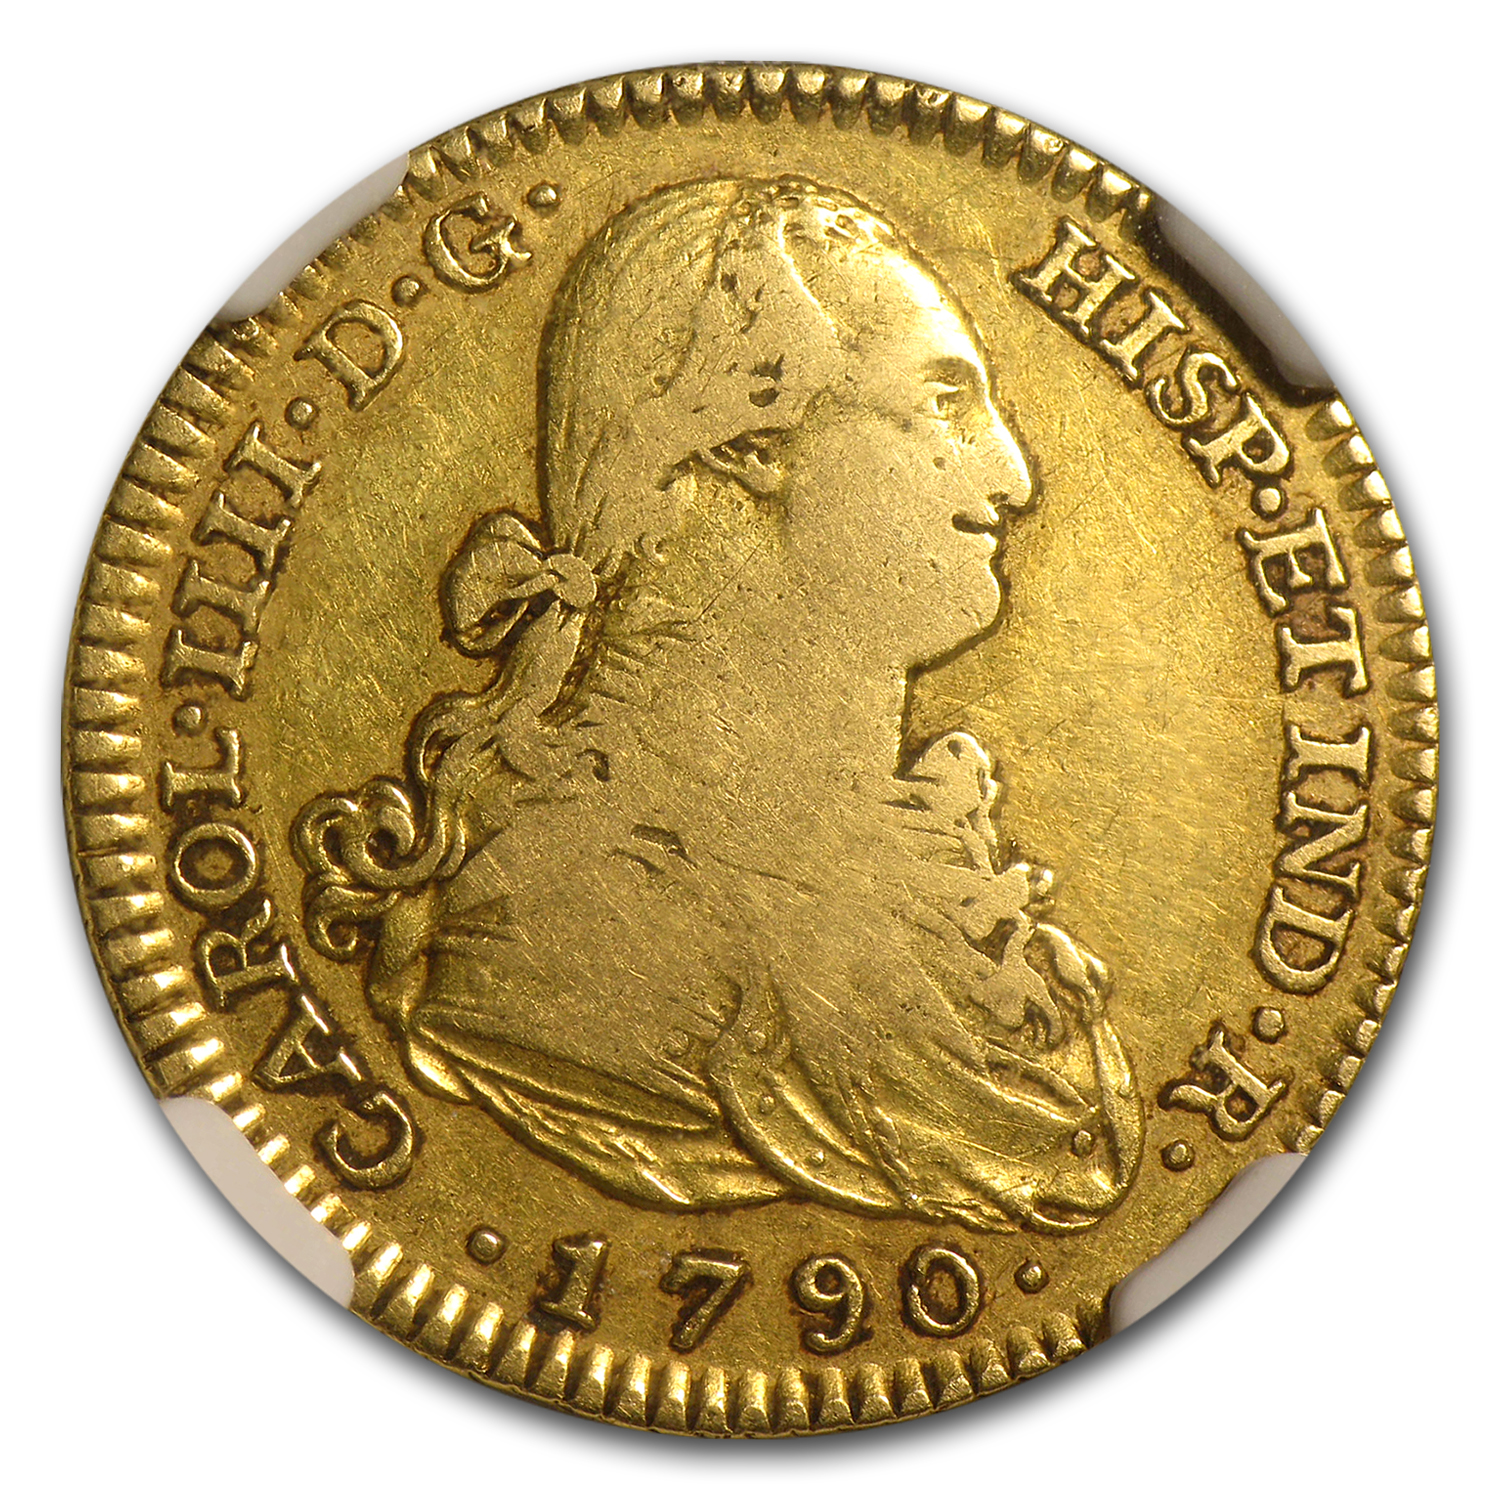 Spain 1790 MF Gold 2 Escudo NGC VF-25